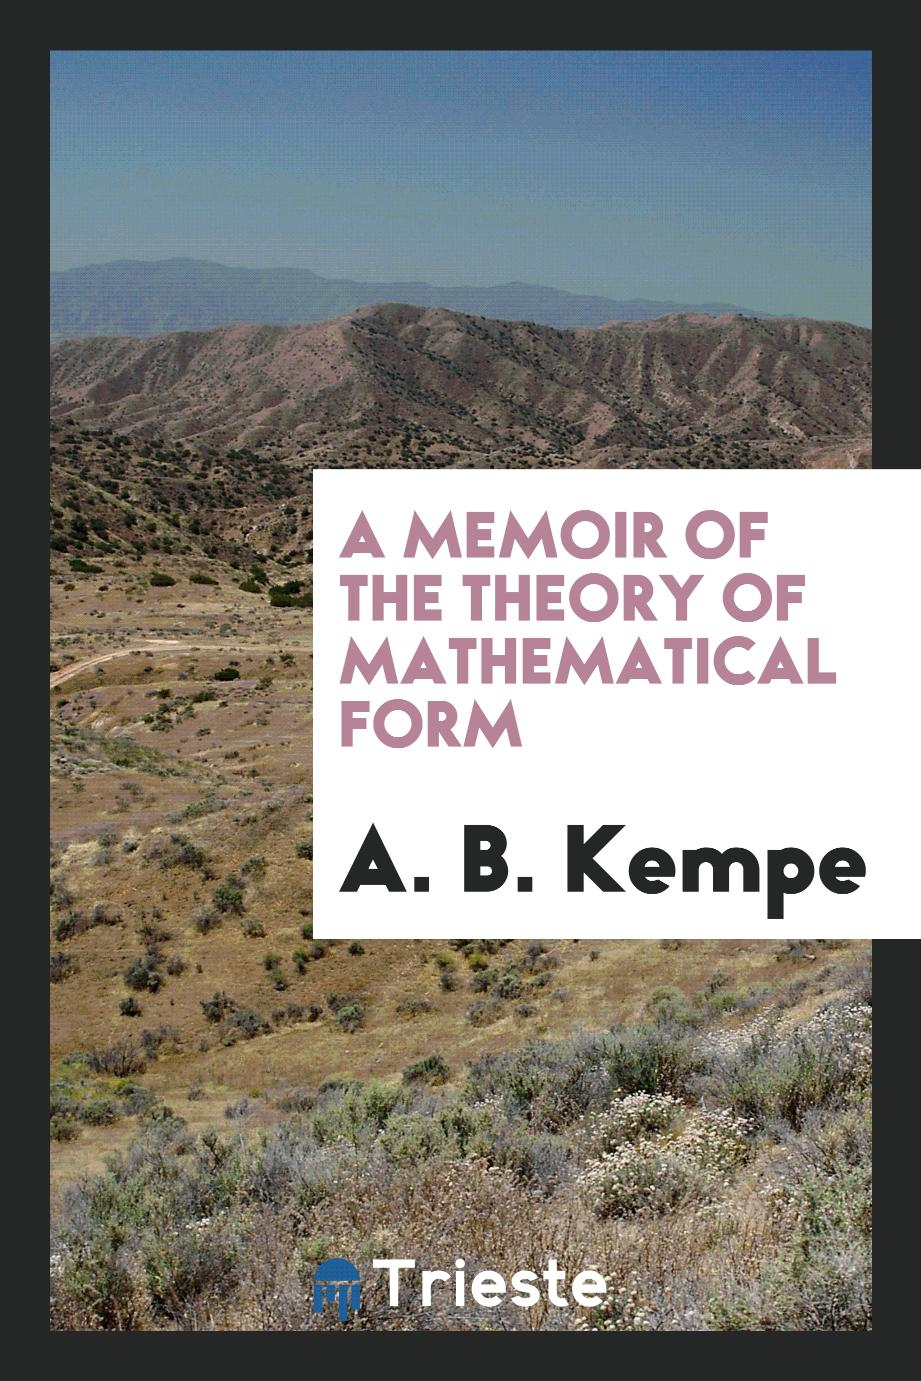 A Memoir of the Theory of Mathematical Form